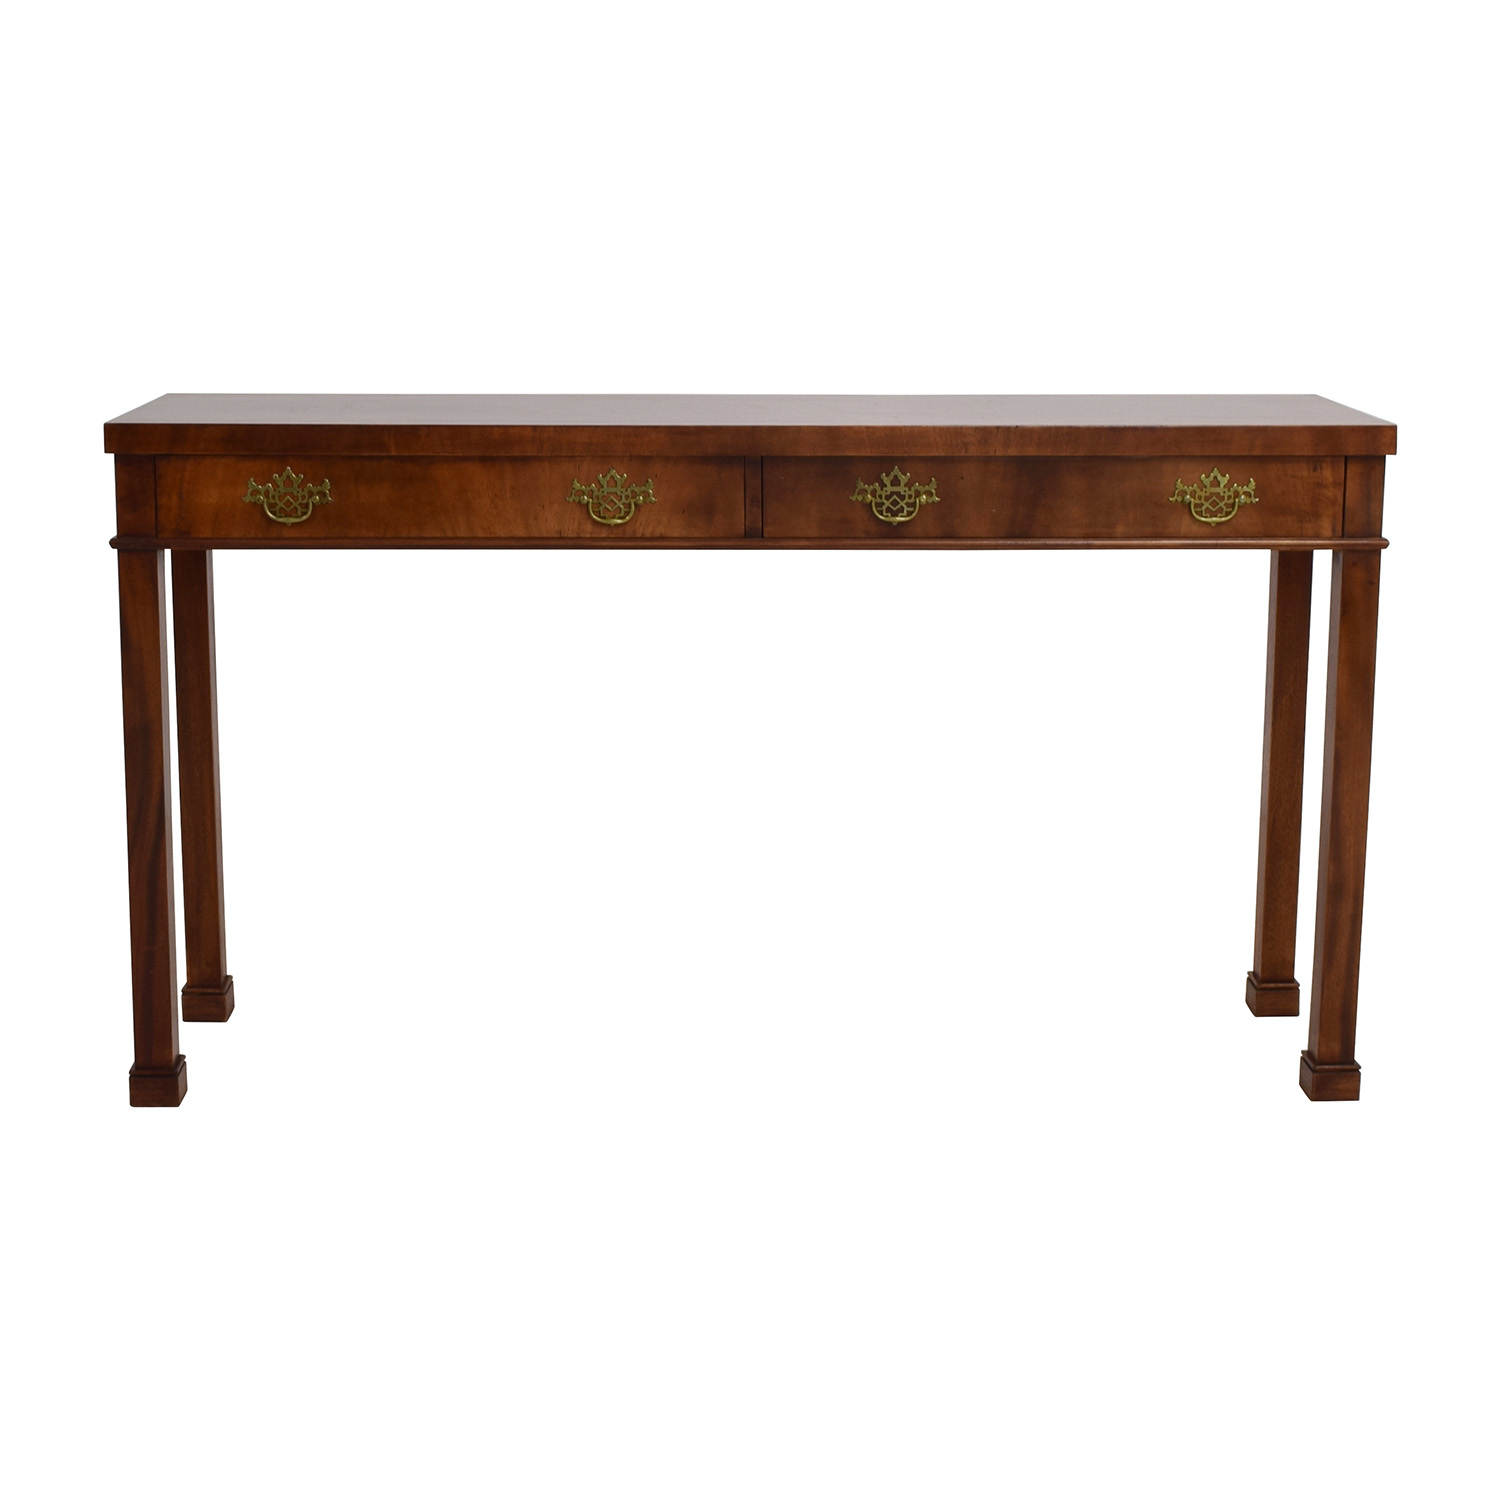 Custom Two-Drawer Wood Sofa Table for sale